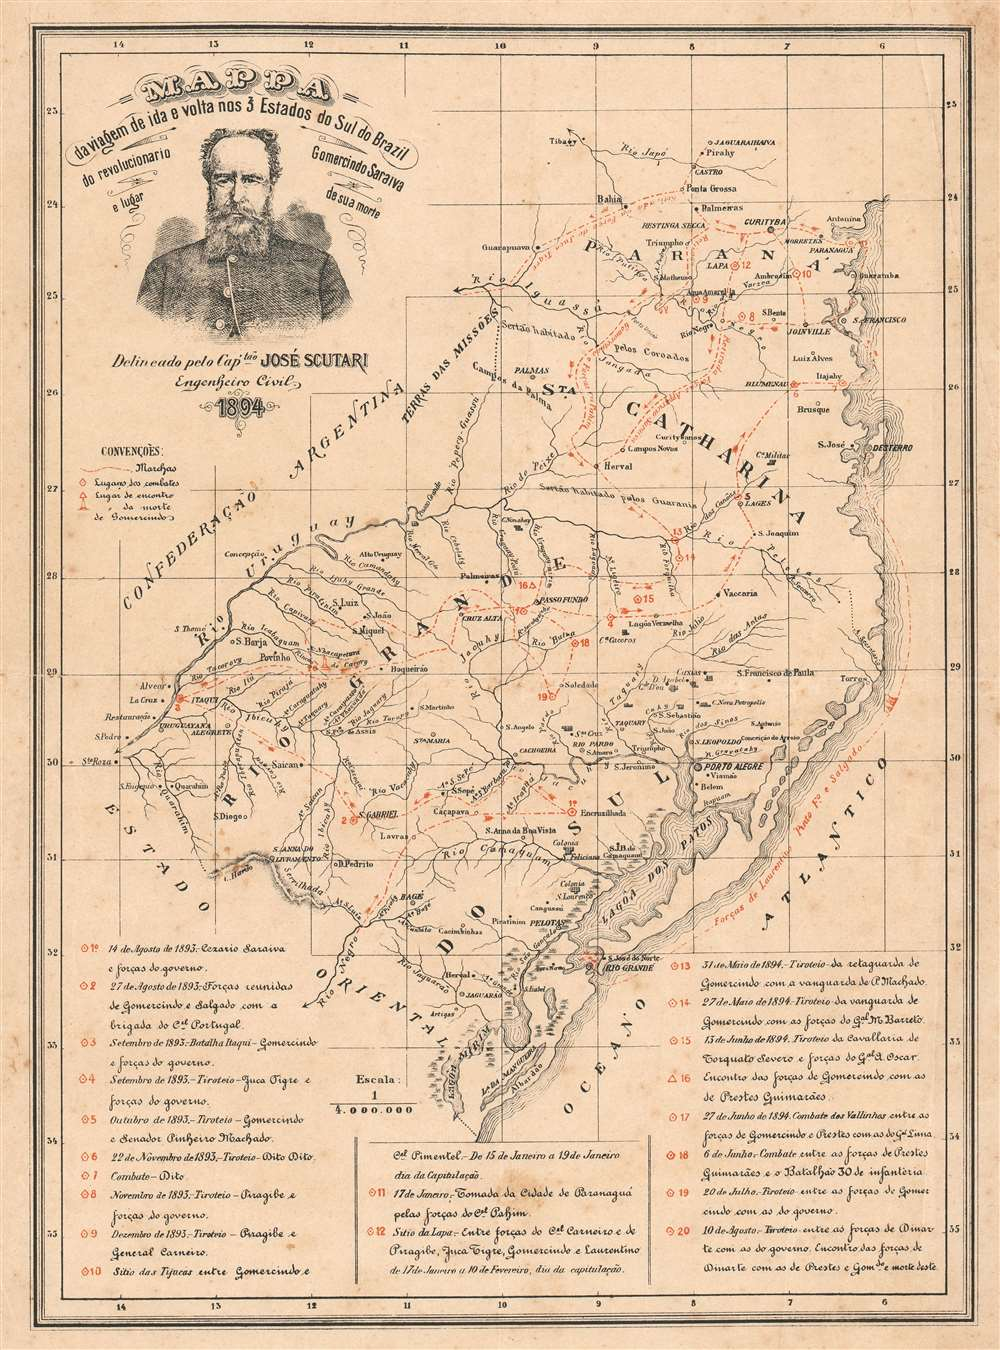 1894 Scutari Map of Southern Brazil During the Federalist Revolution